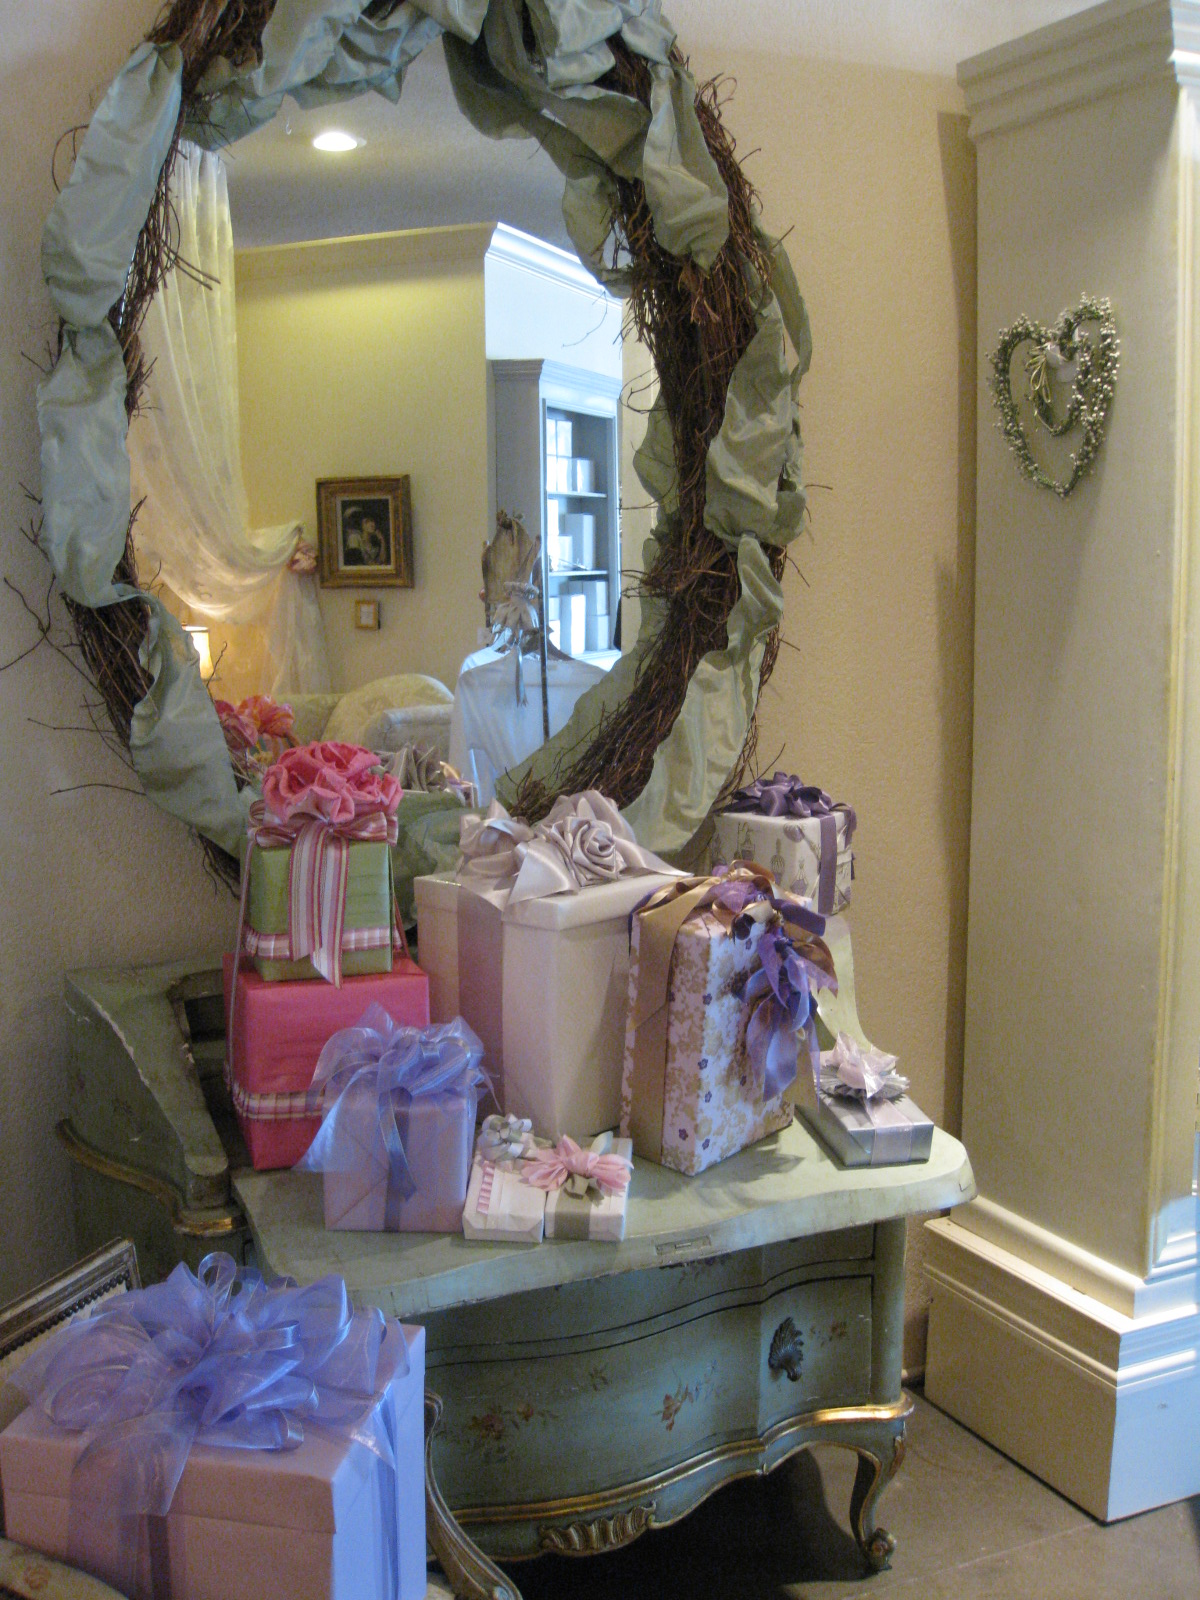 Beautiful Gifts at Do Me a Favor